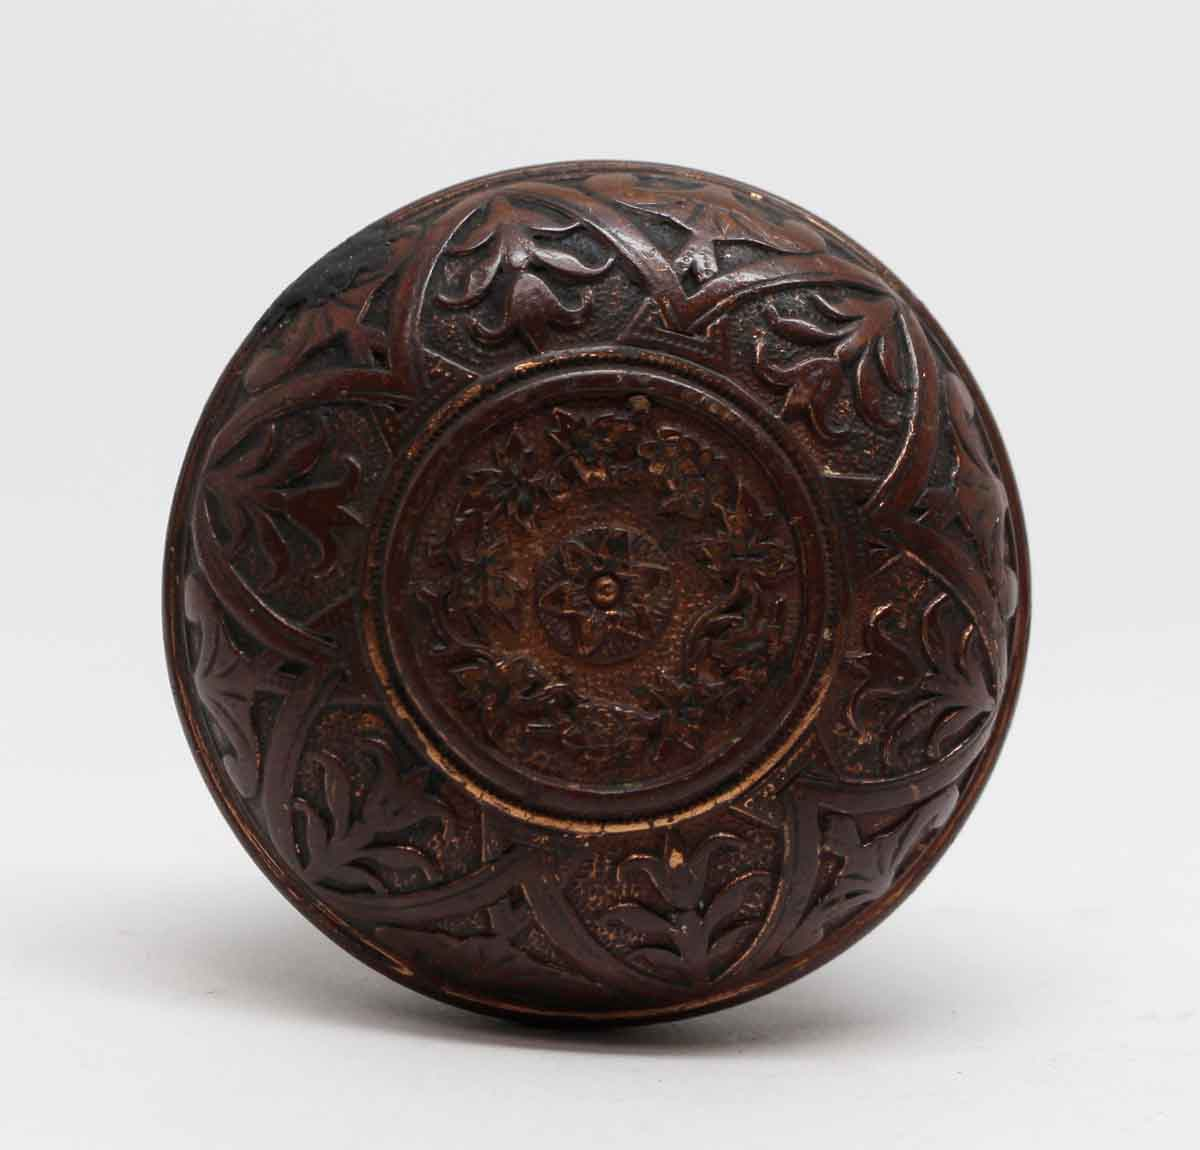 6 Fold Classic Bronze Entry Door Knob With A Floral Center Olde